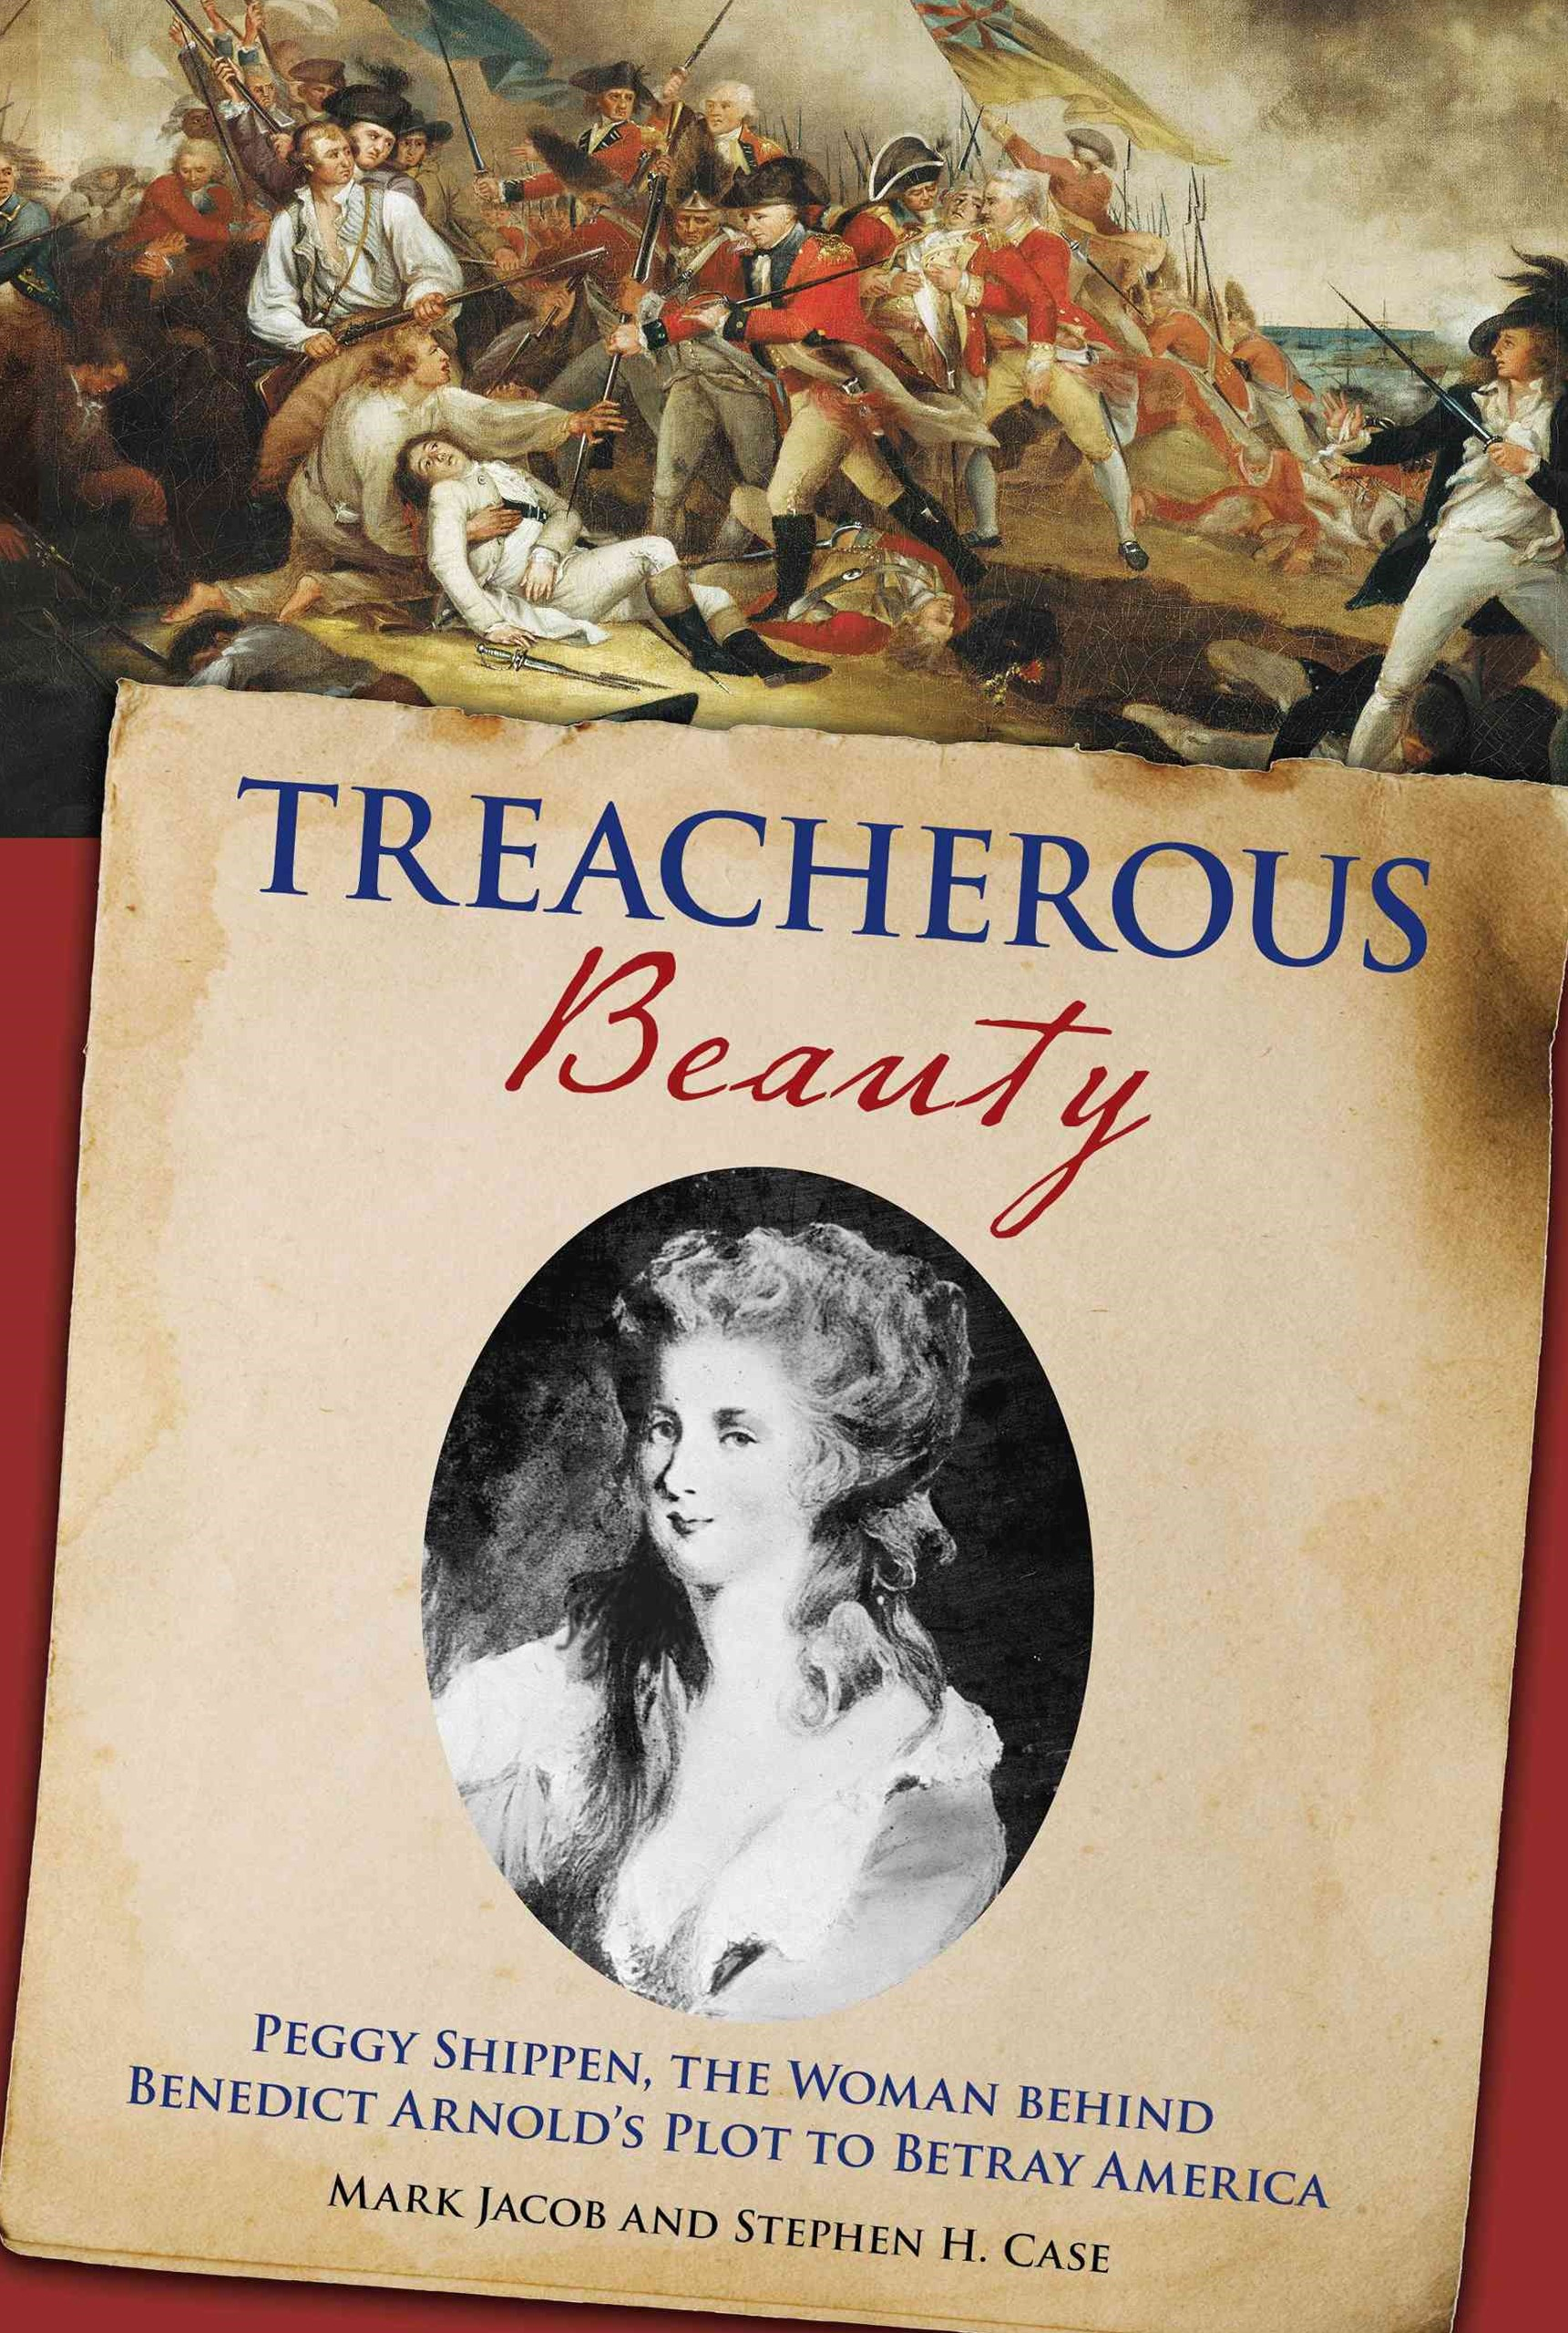 Treacherous Beauty